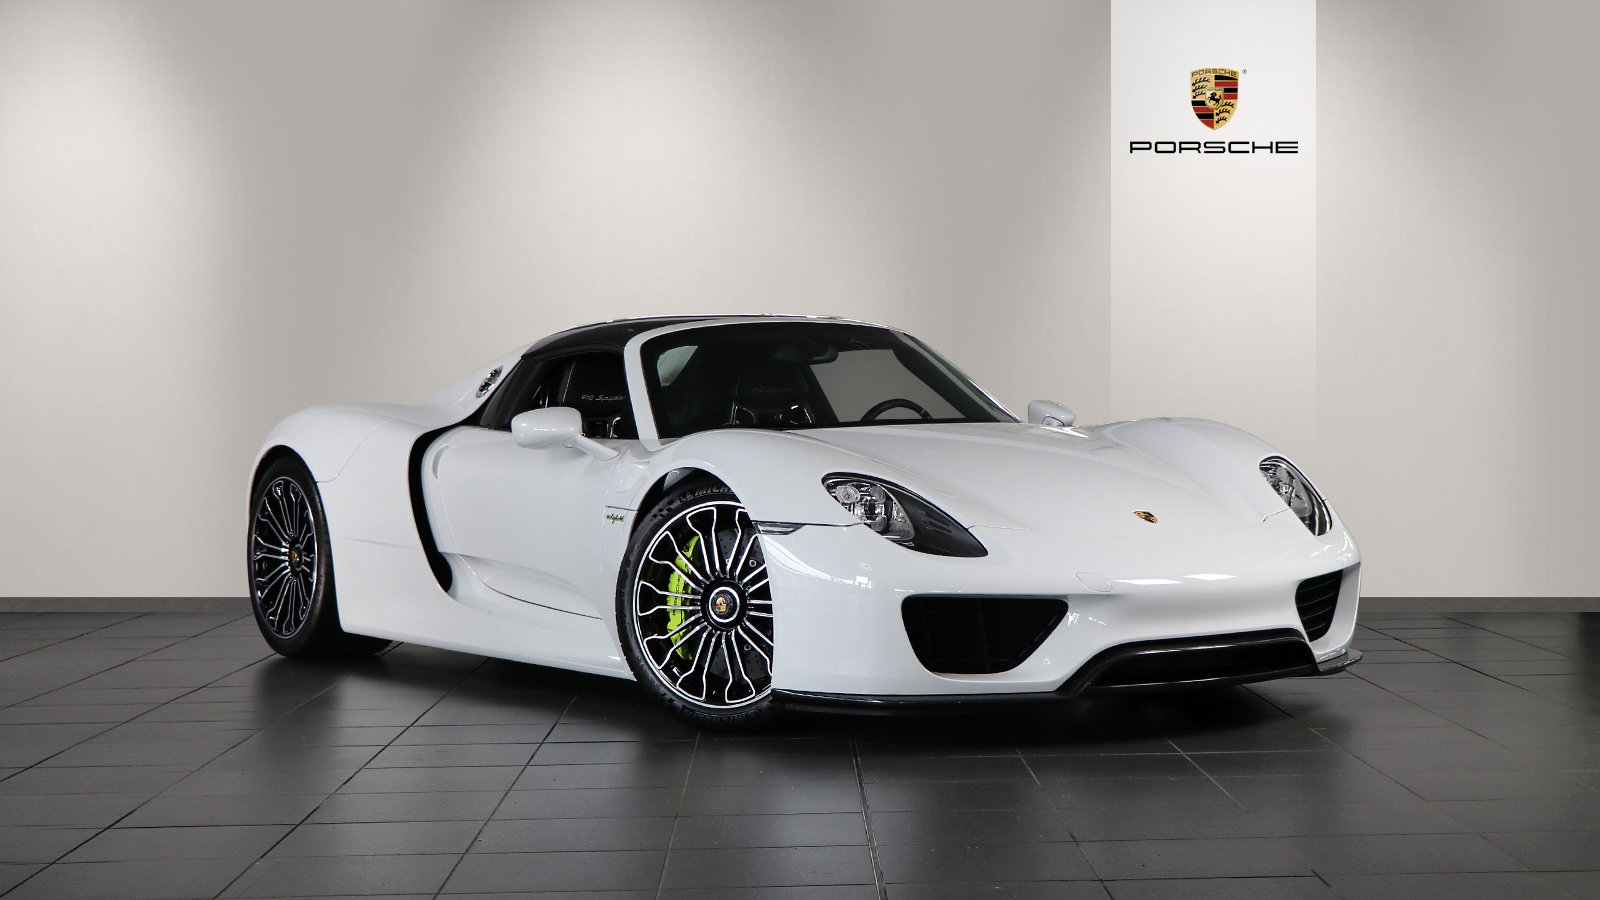 2015 Porsche 918 Spyder 2dr PDK For Sale (picture 1 of 6)